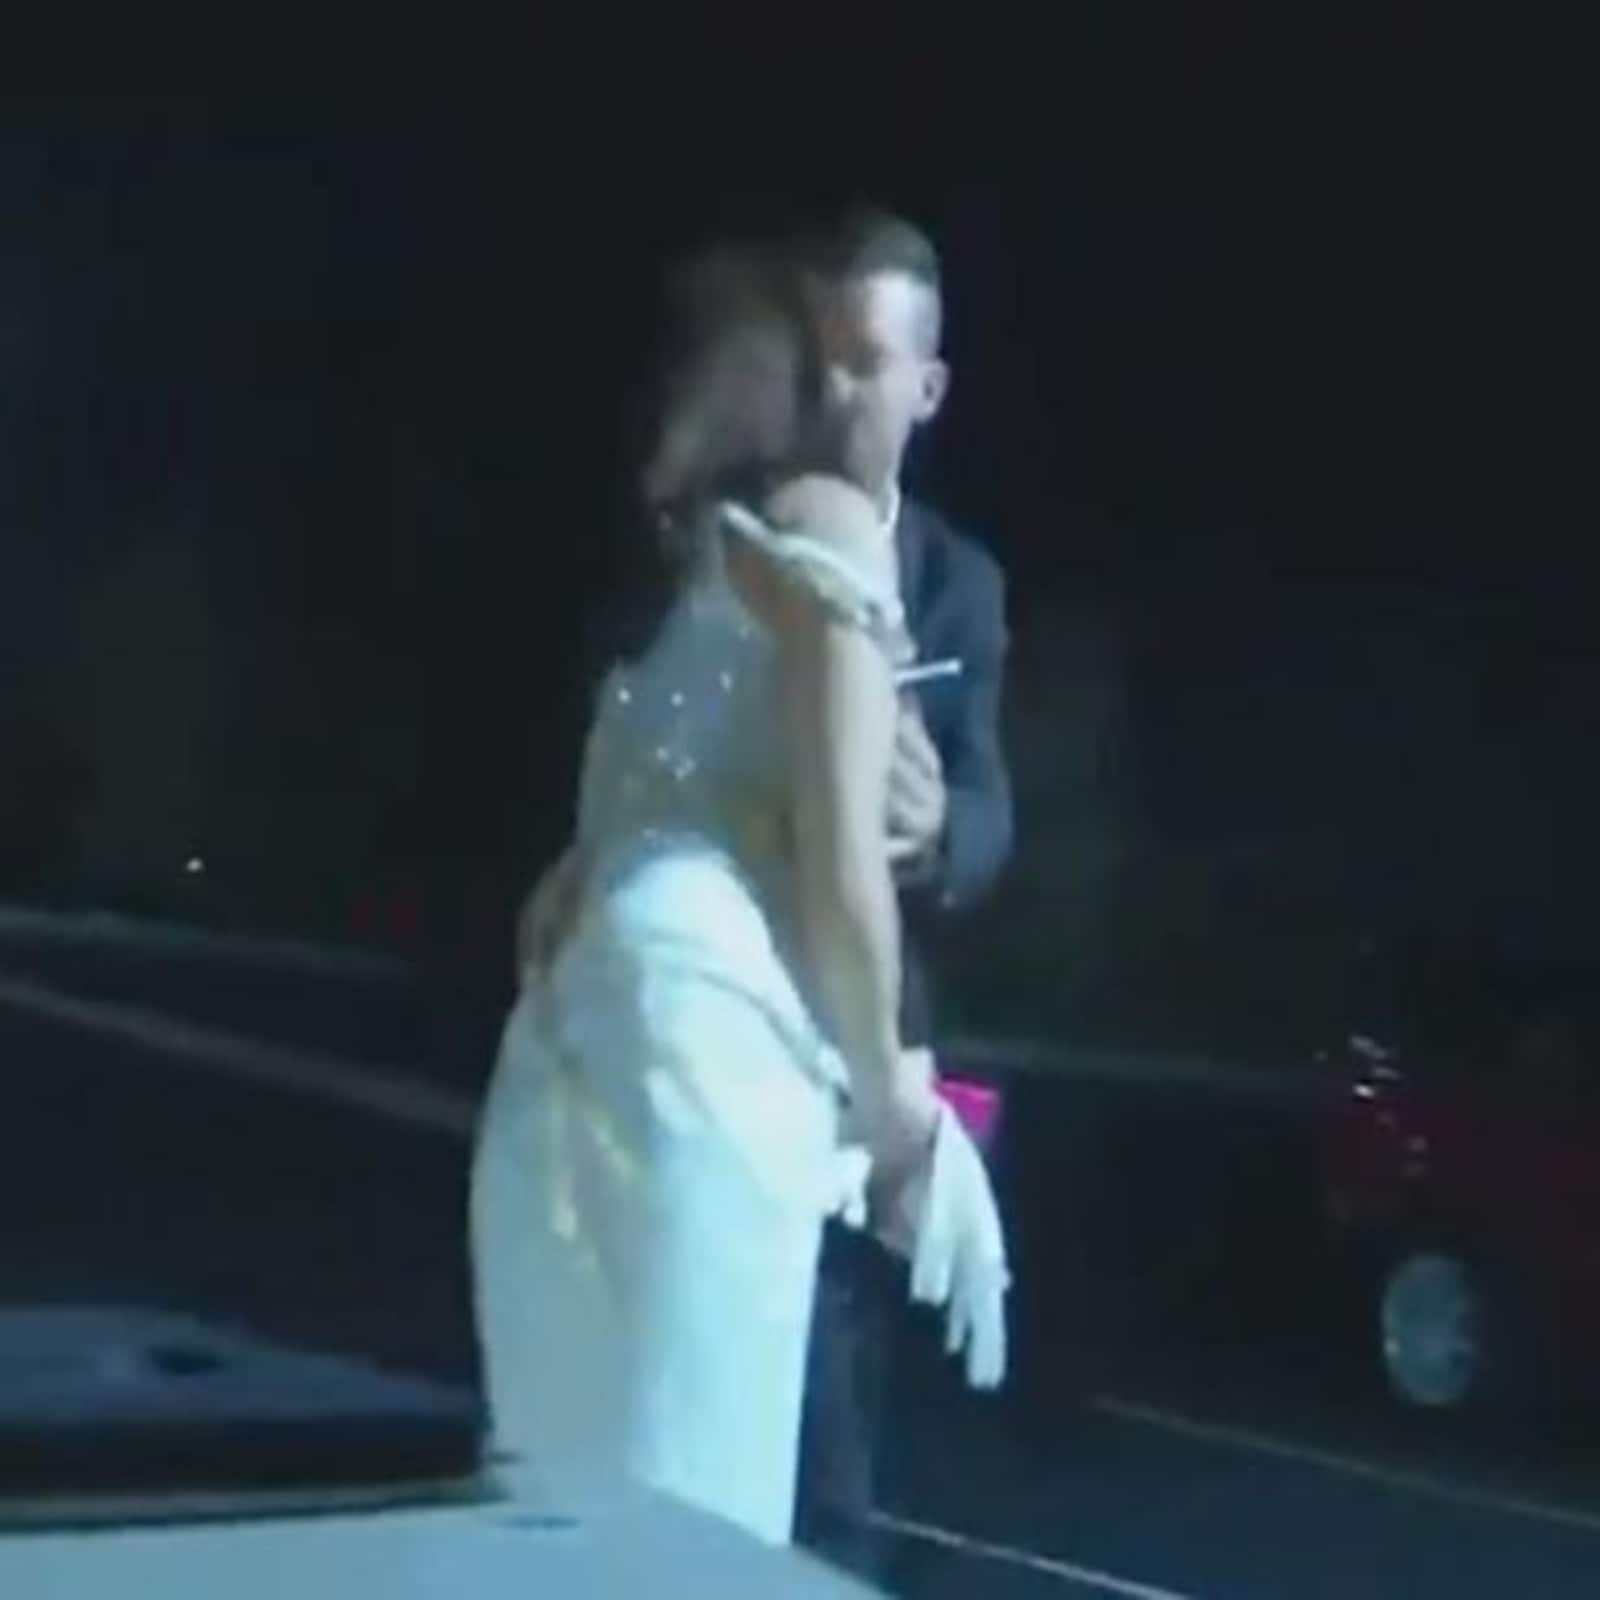 bride elopes with cousin